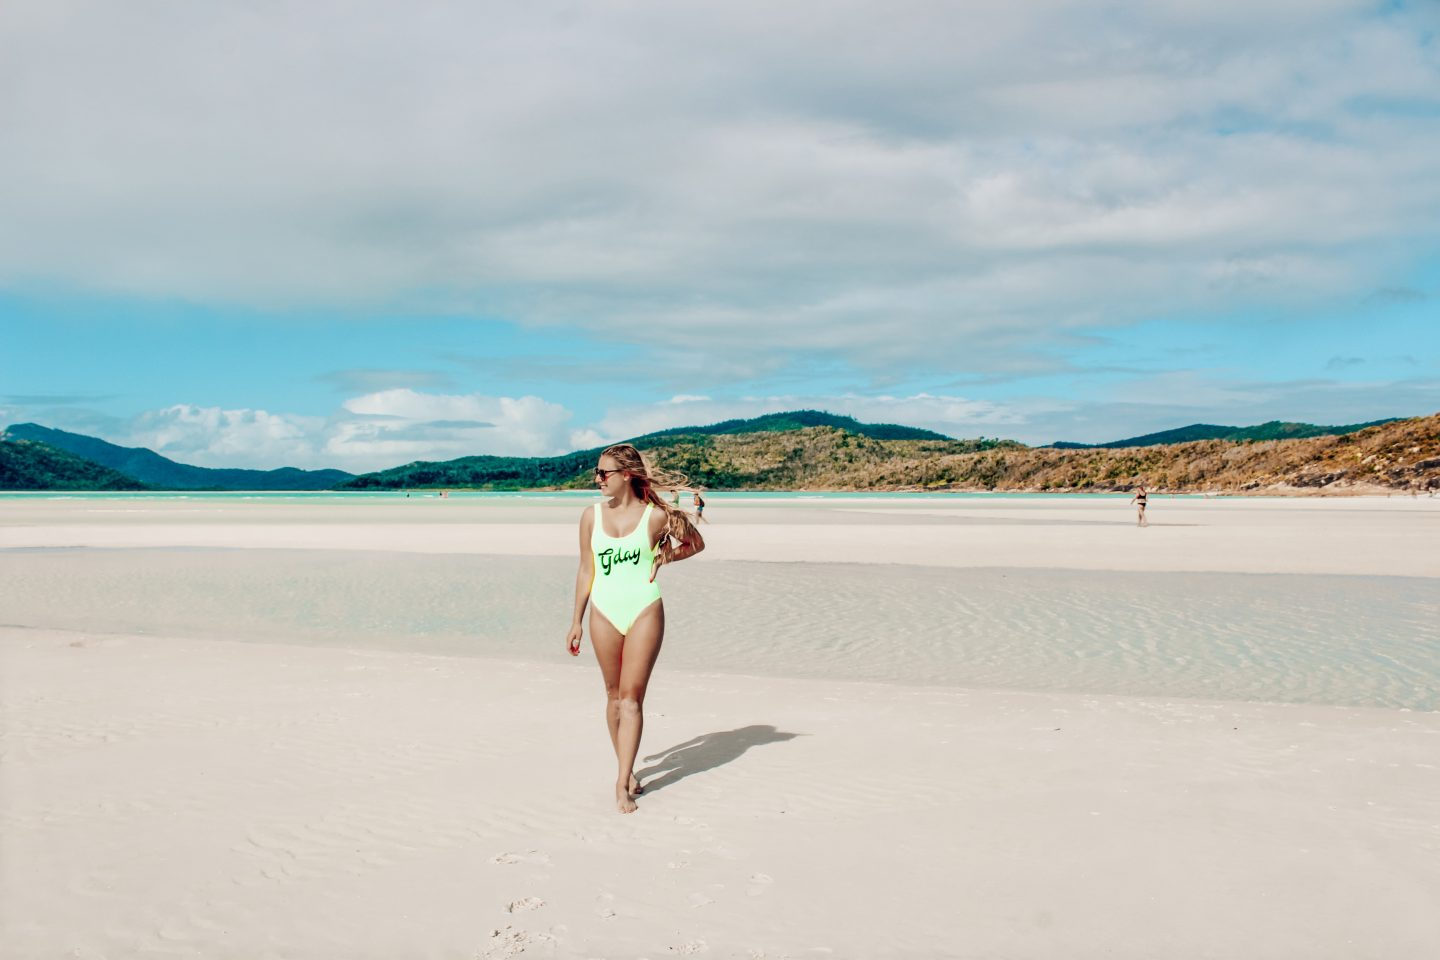 Visiting Whitehaven Beach in the Whitsunday Islands.